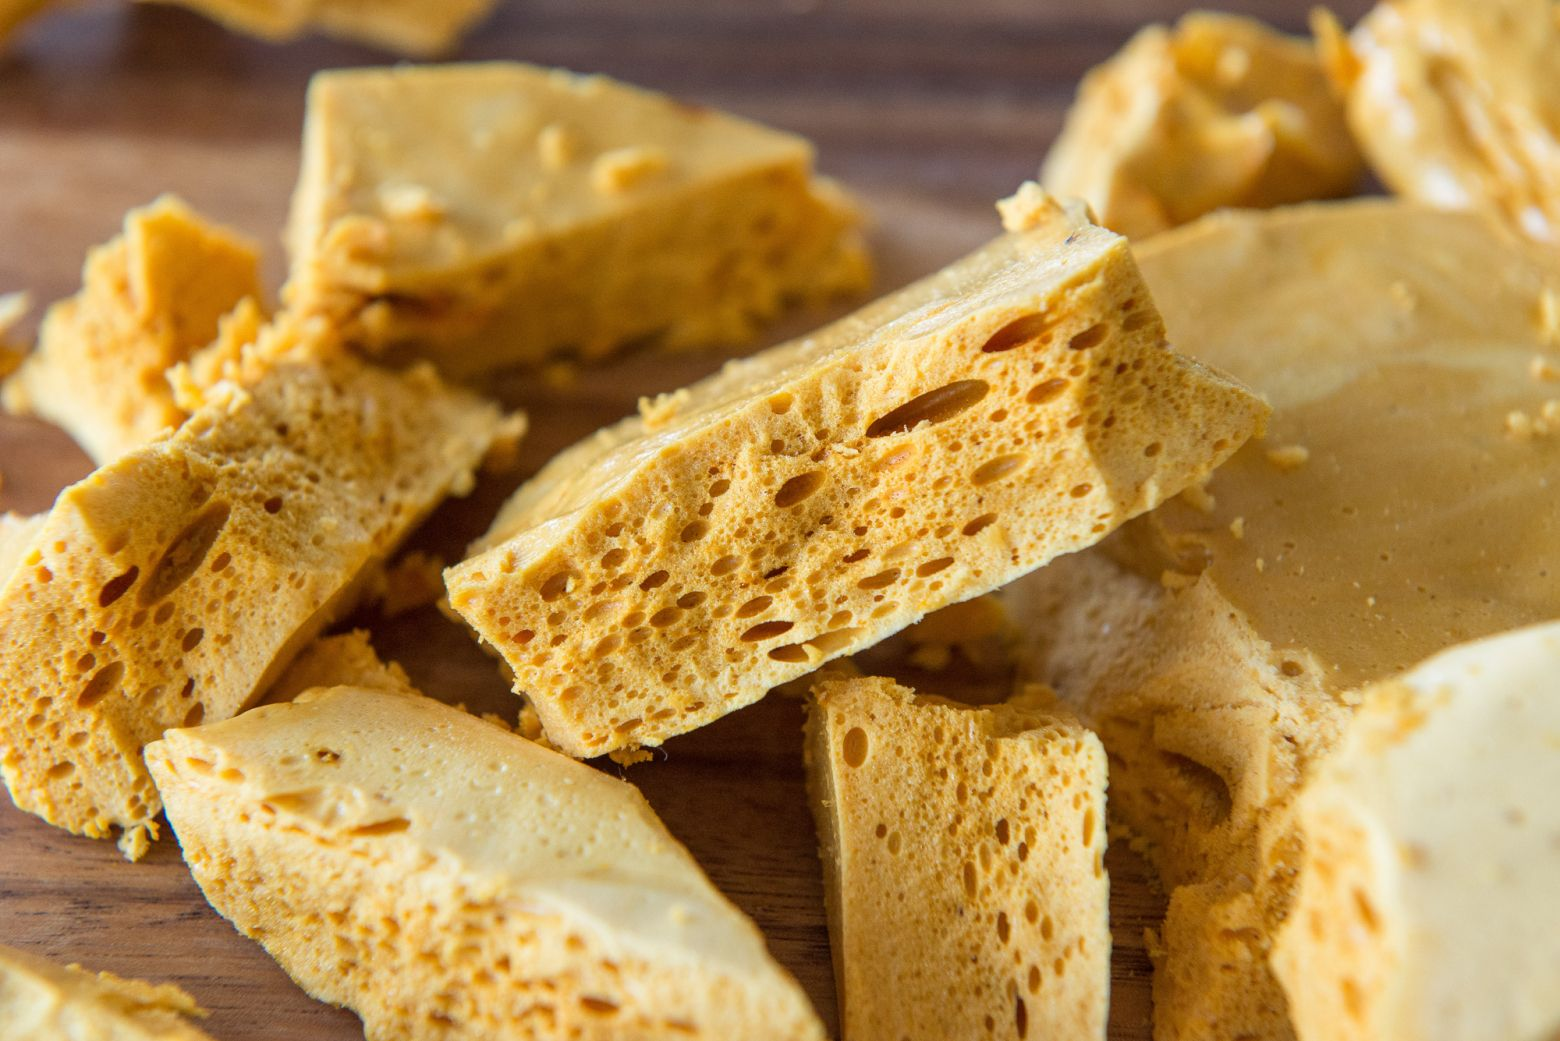 Homemade Honeycomb Candy